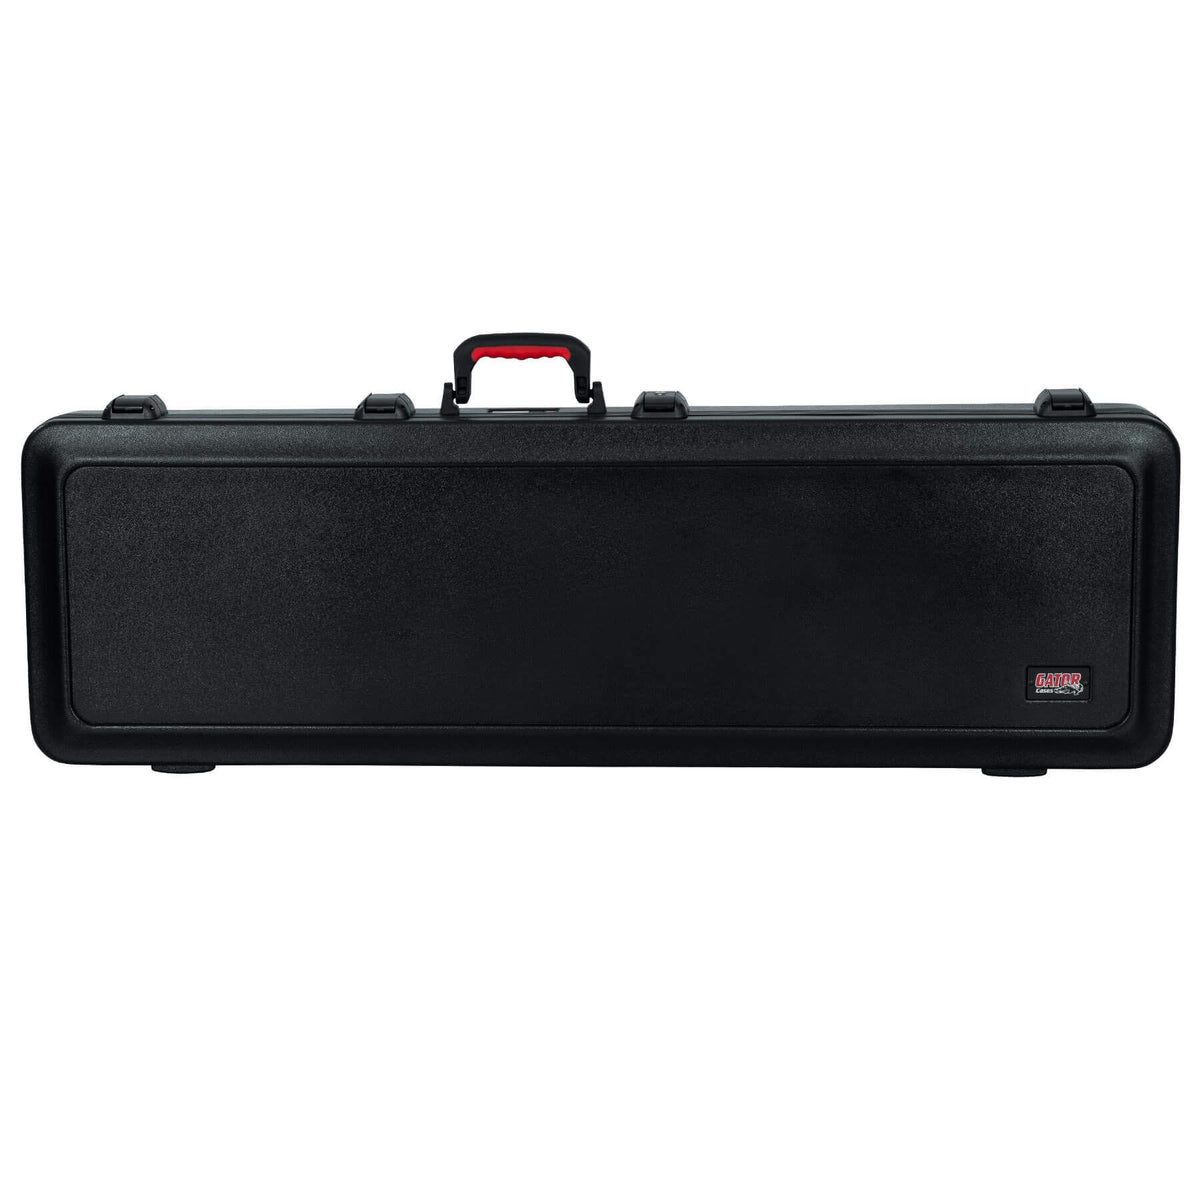 Gator ATA Bass Guitar Case fits Fender Deluxe Active Jazz Bass